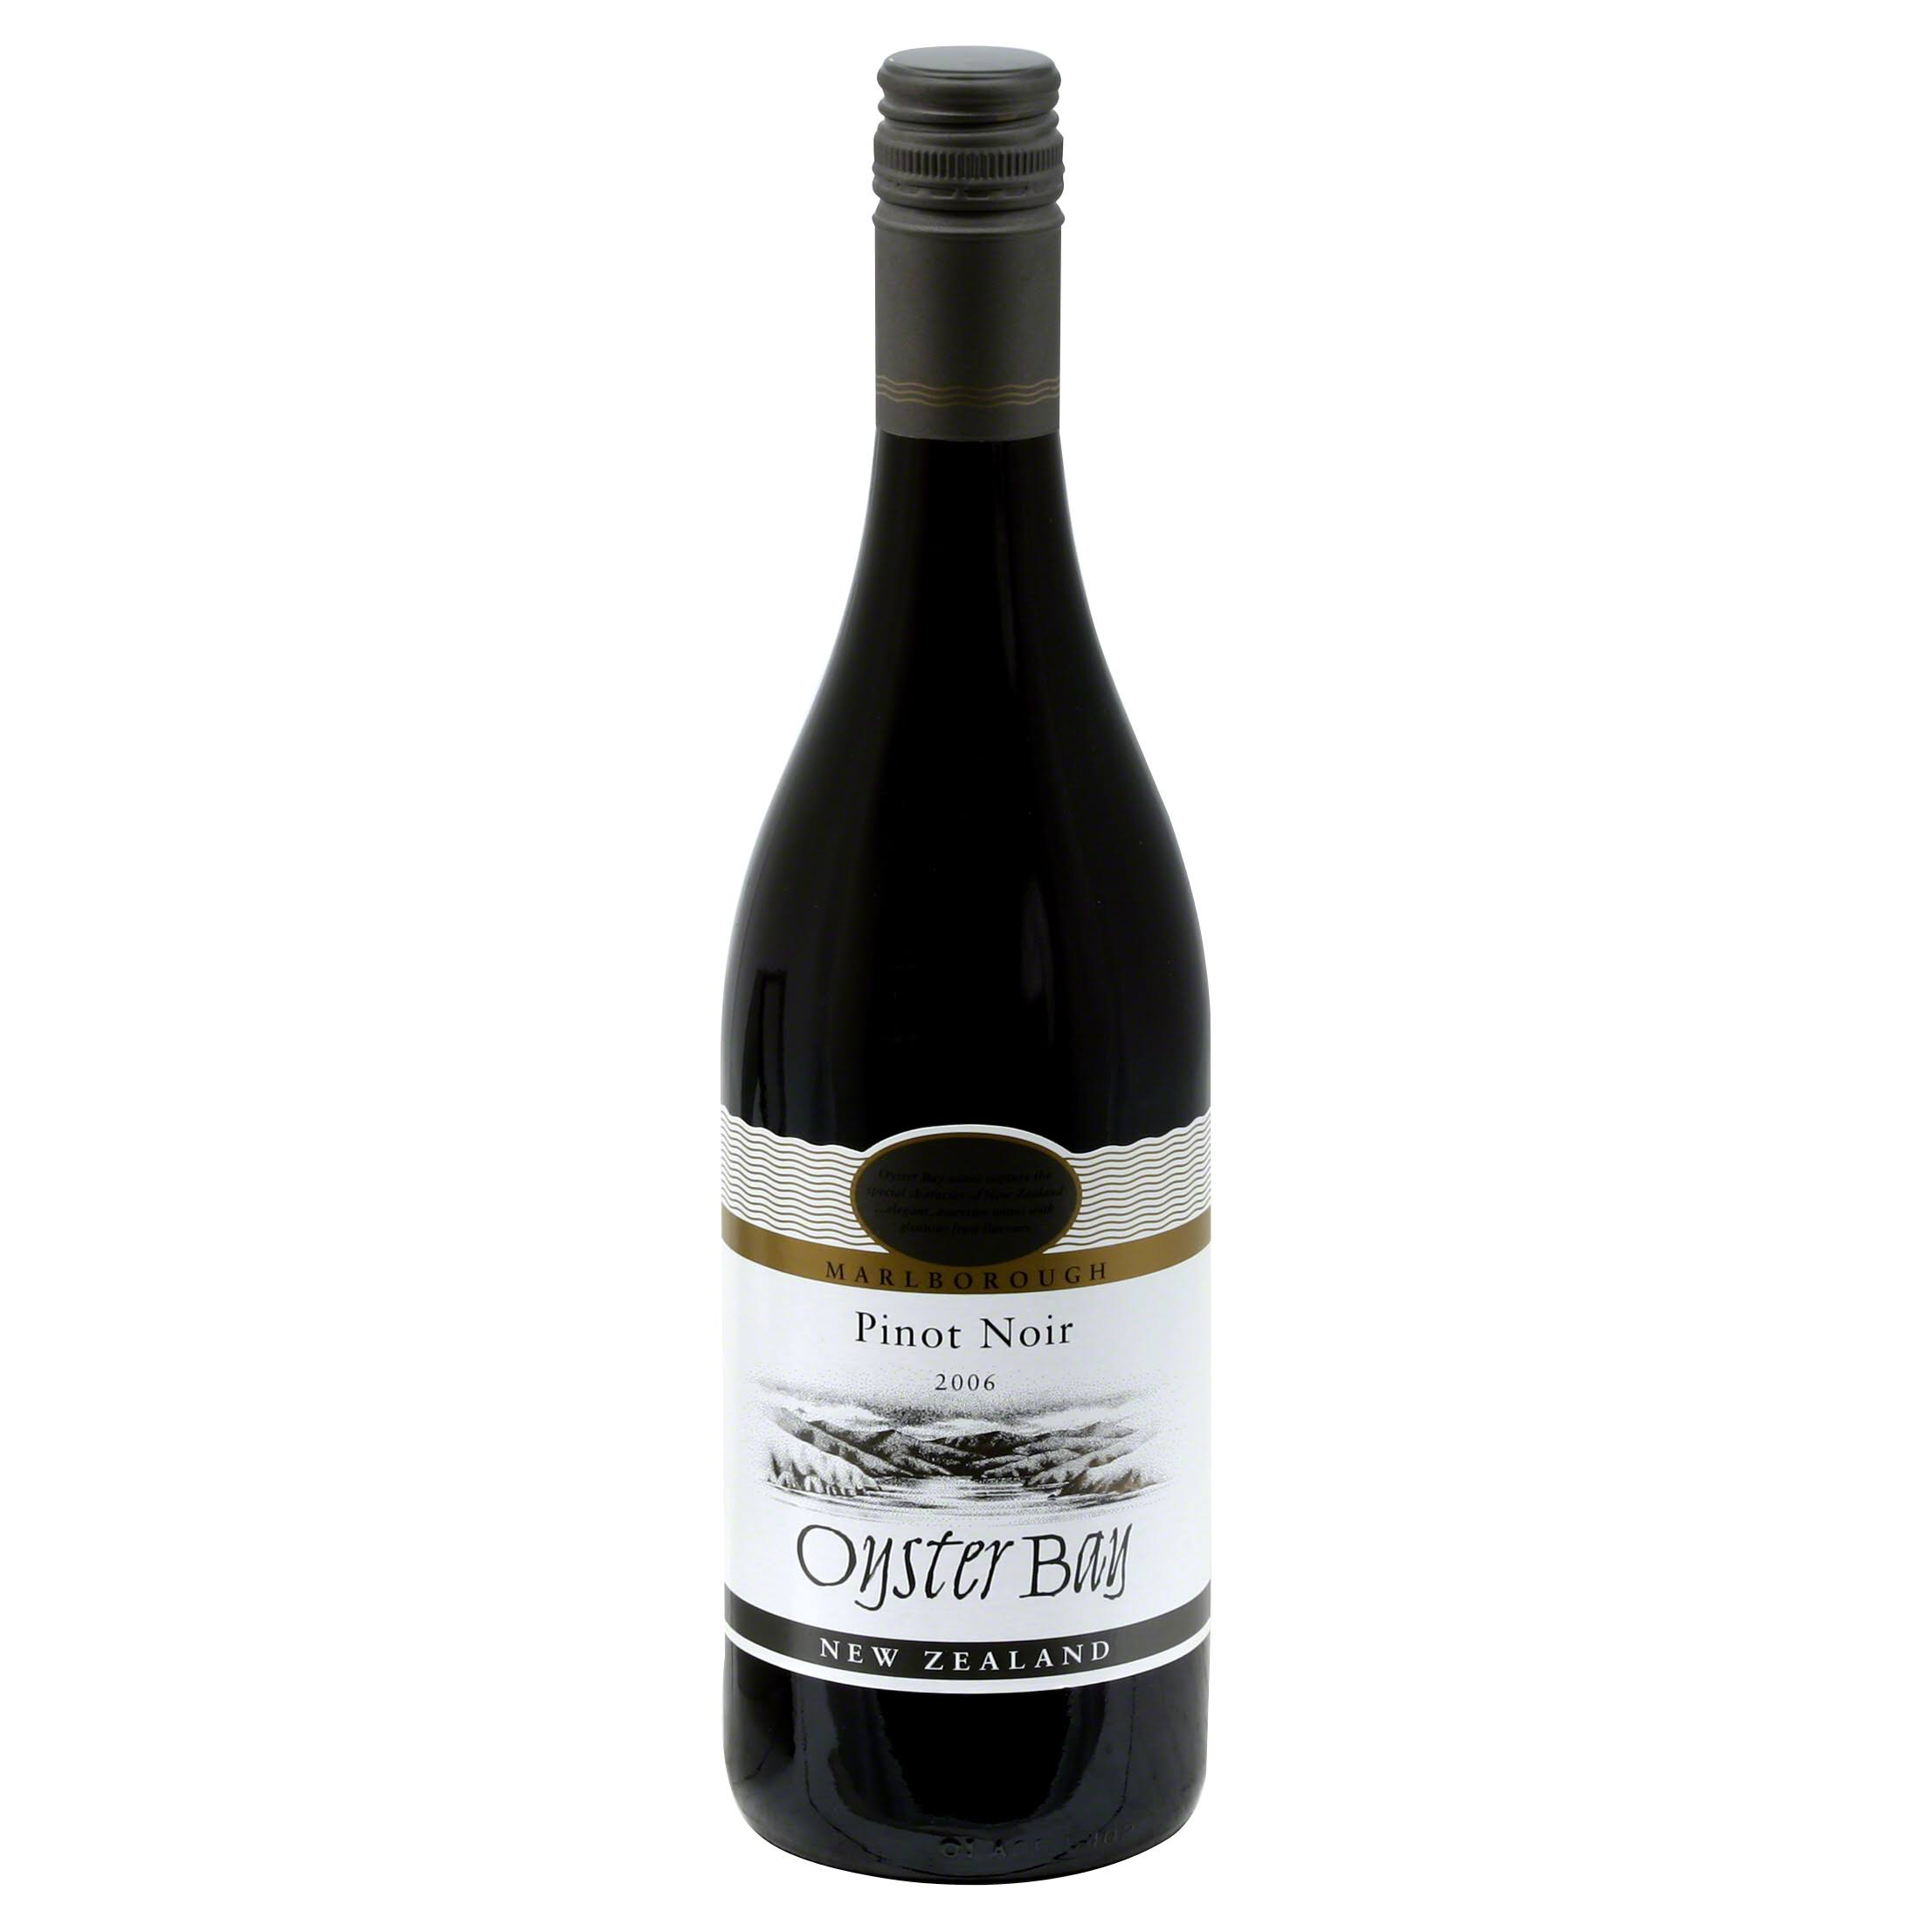 Oyster Bay Pinot Noir - Marlborough, New Zealand